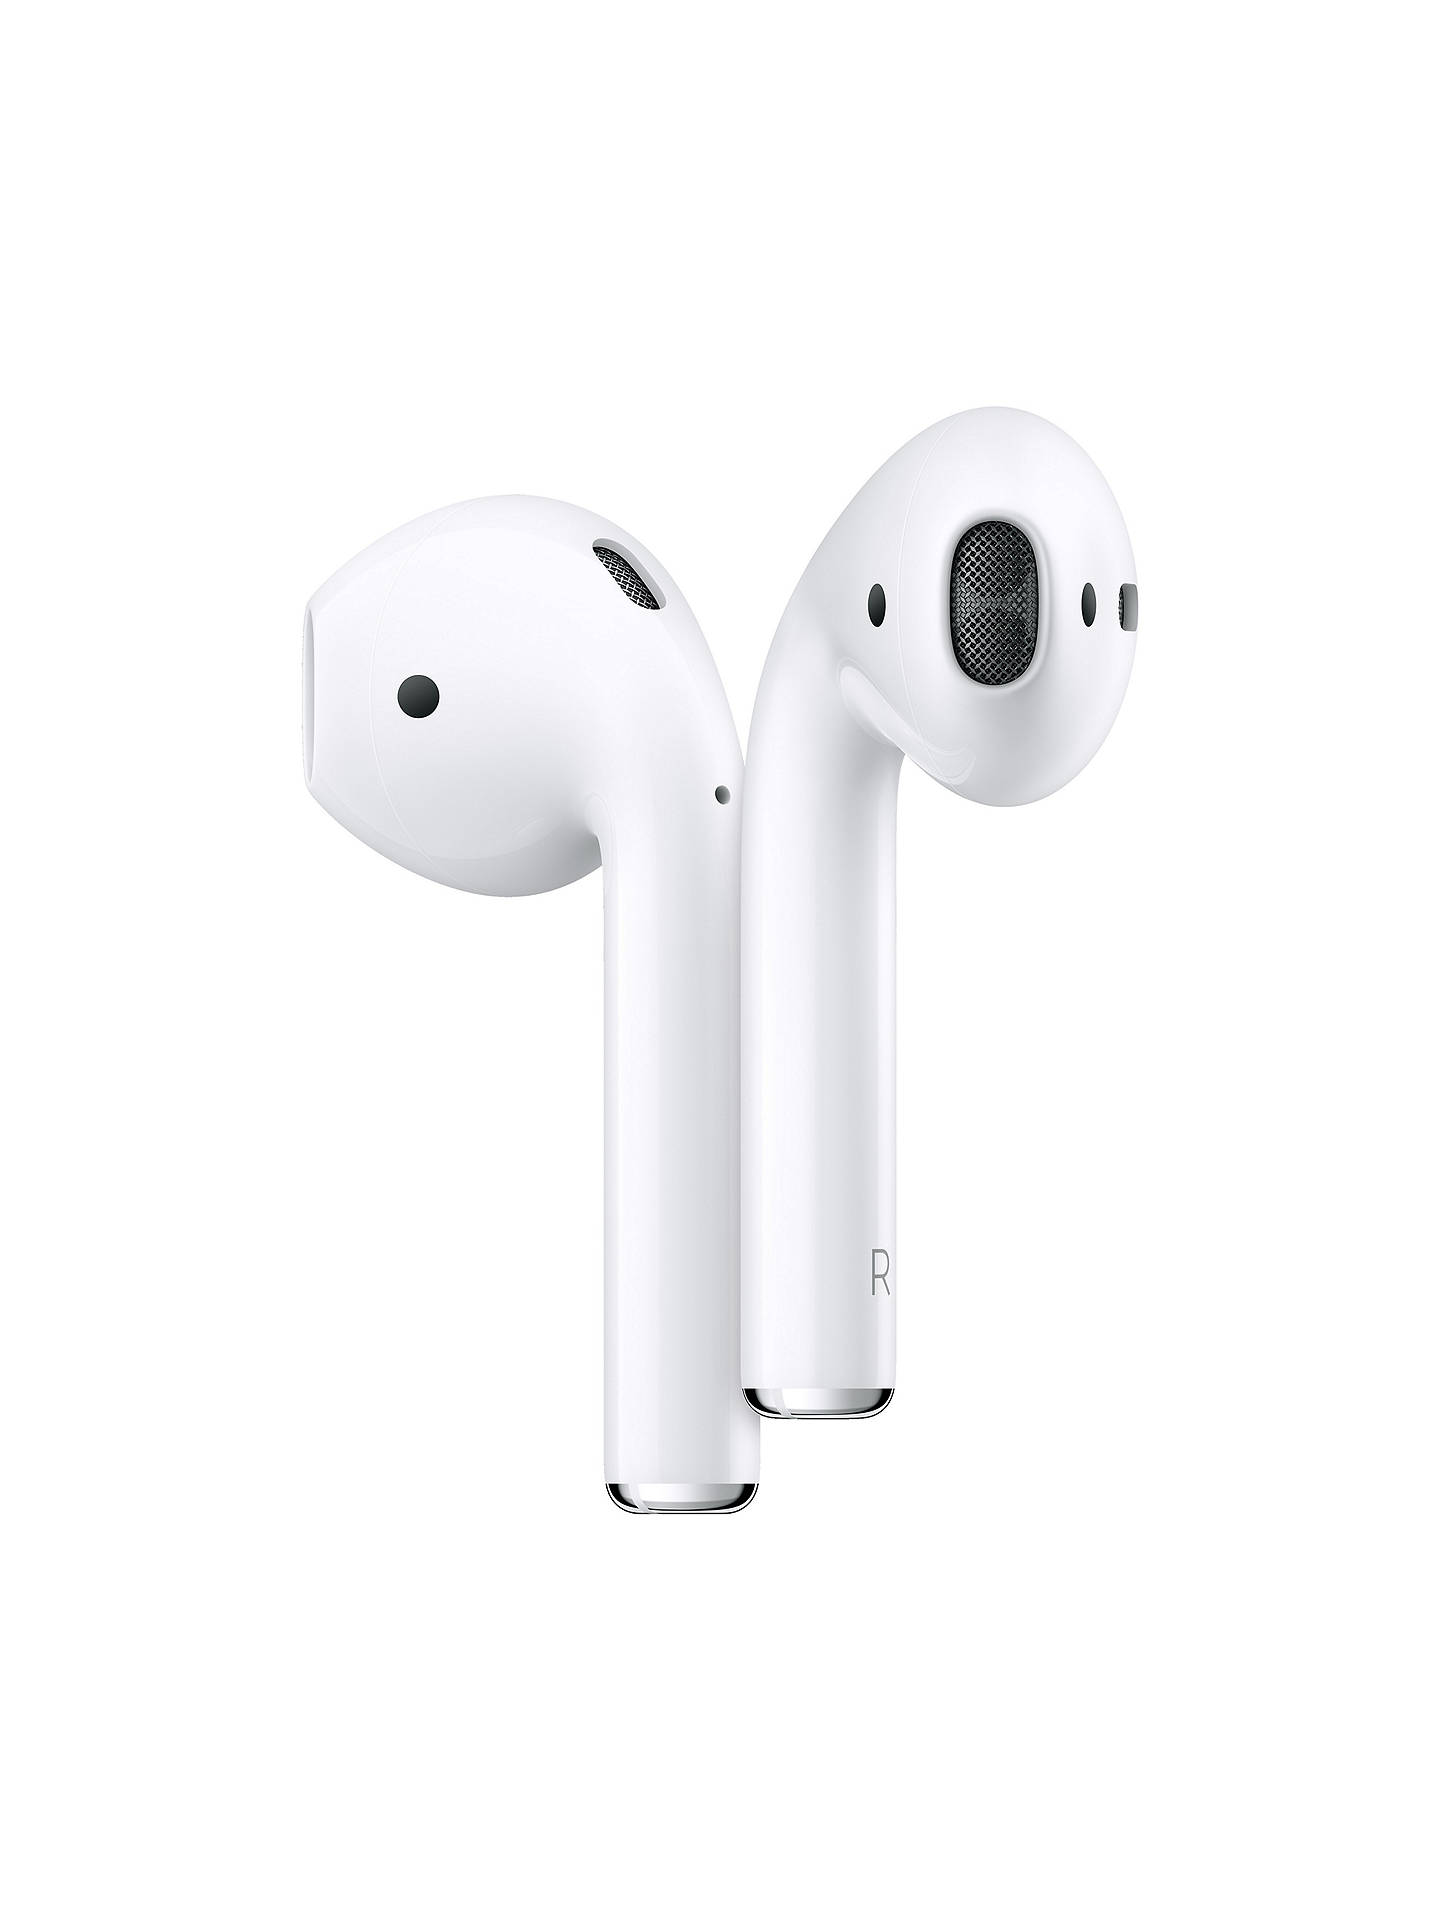 newest a7ce4 14307 2019 Apple AirPods with Wireless Charging Case